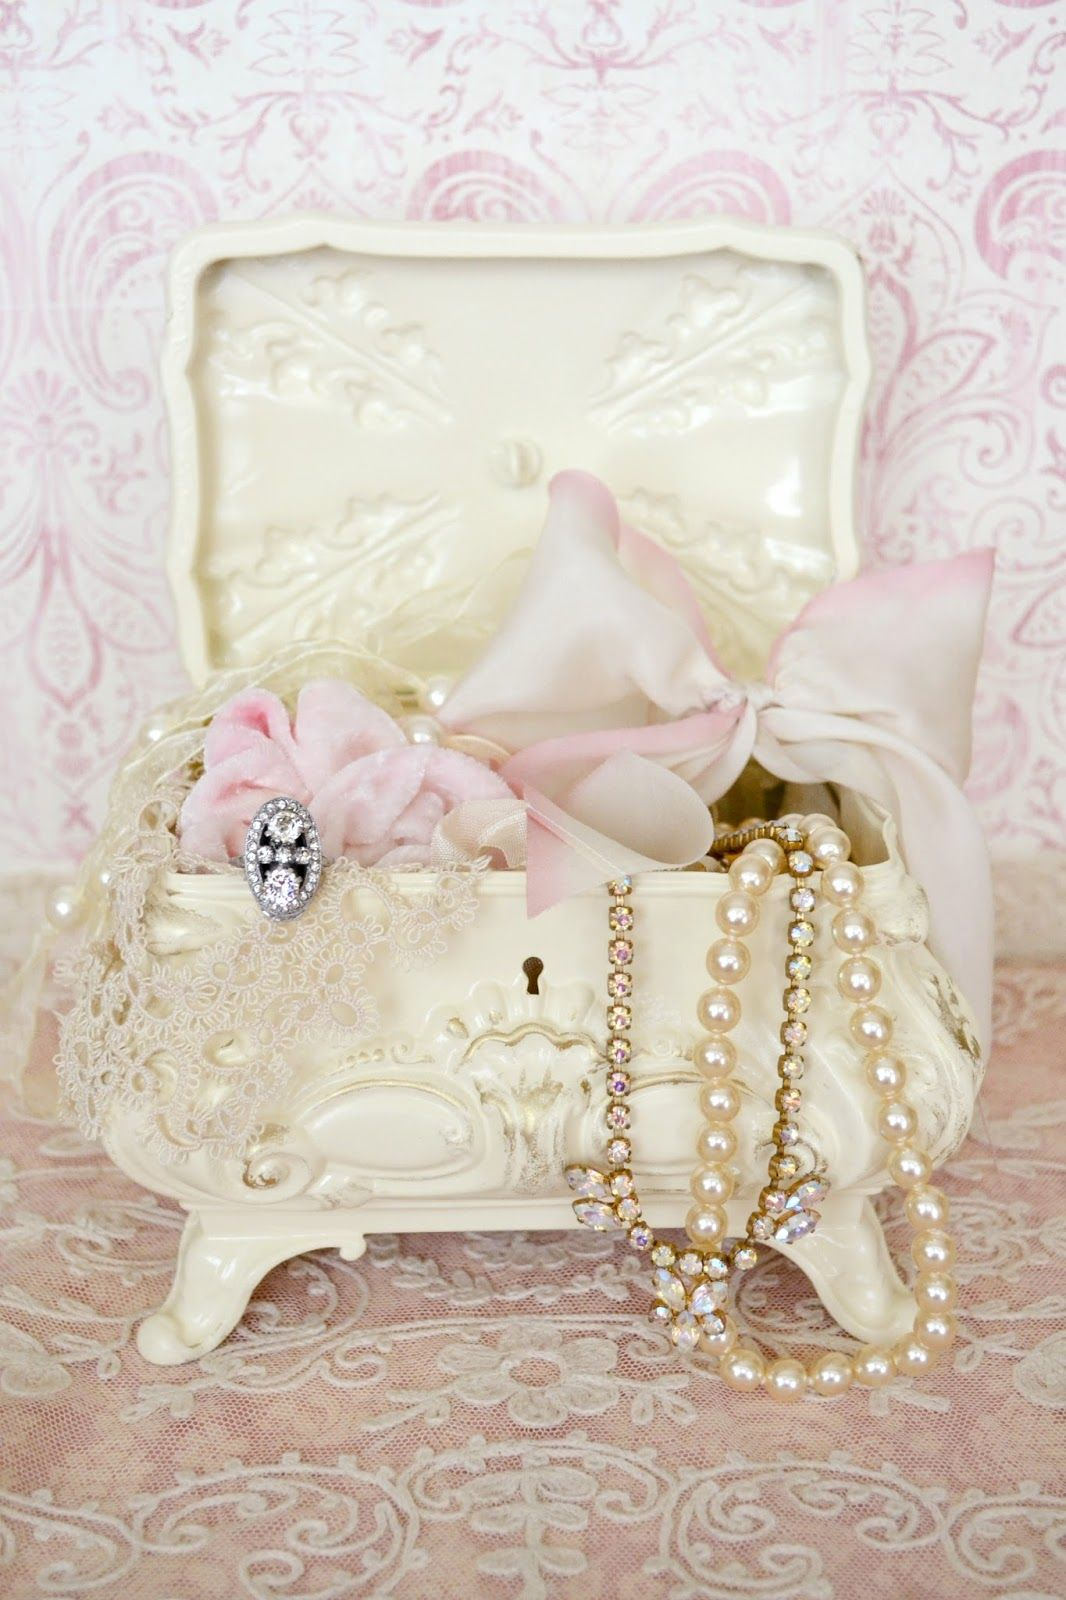 Pingl par lindsey maughan sur shabby chic and vintage for Boite shabby chic